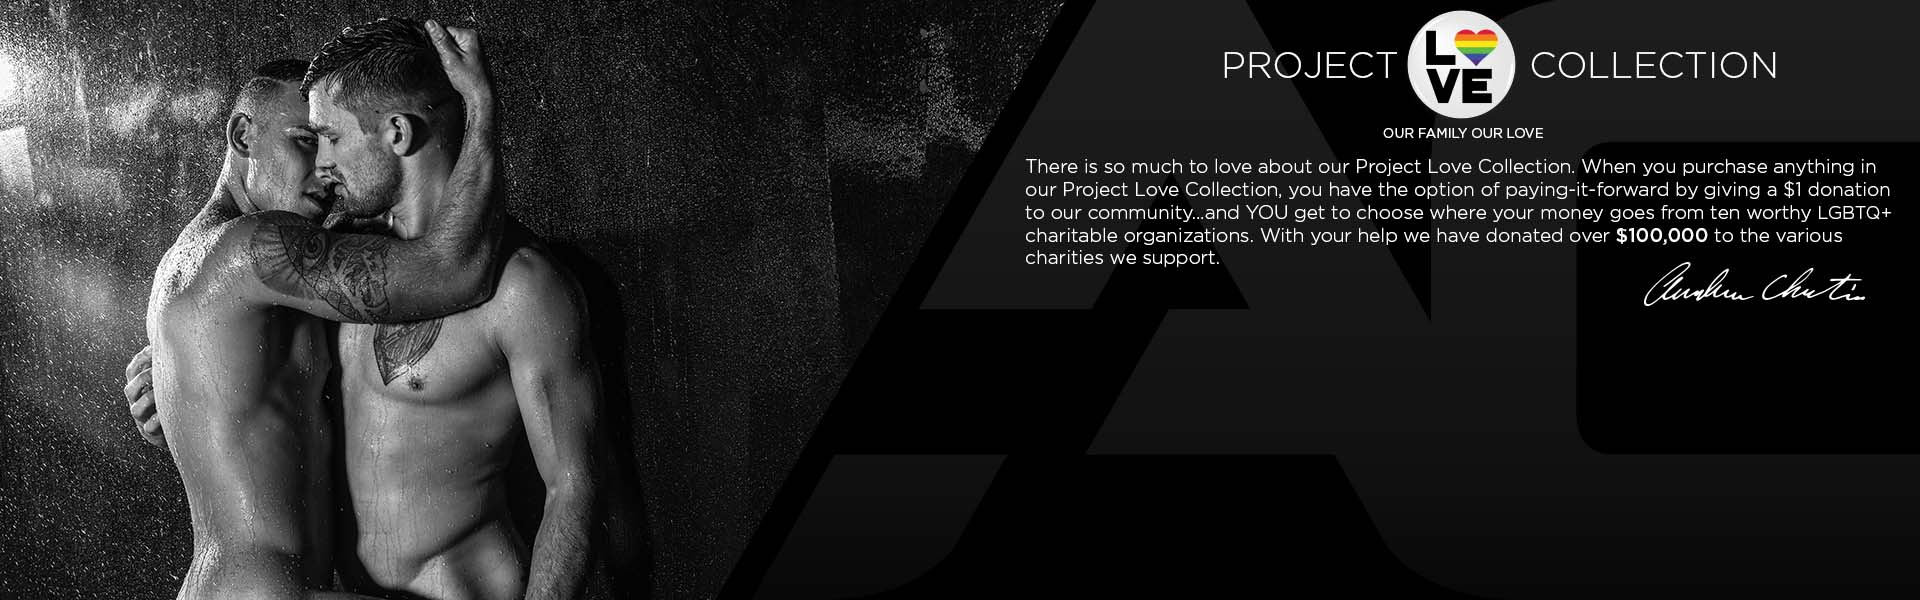 PROJECT LOVE COLLECTION